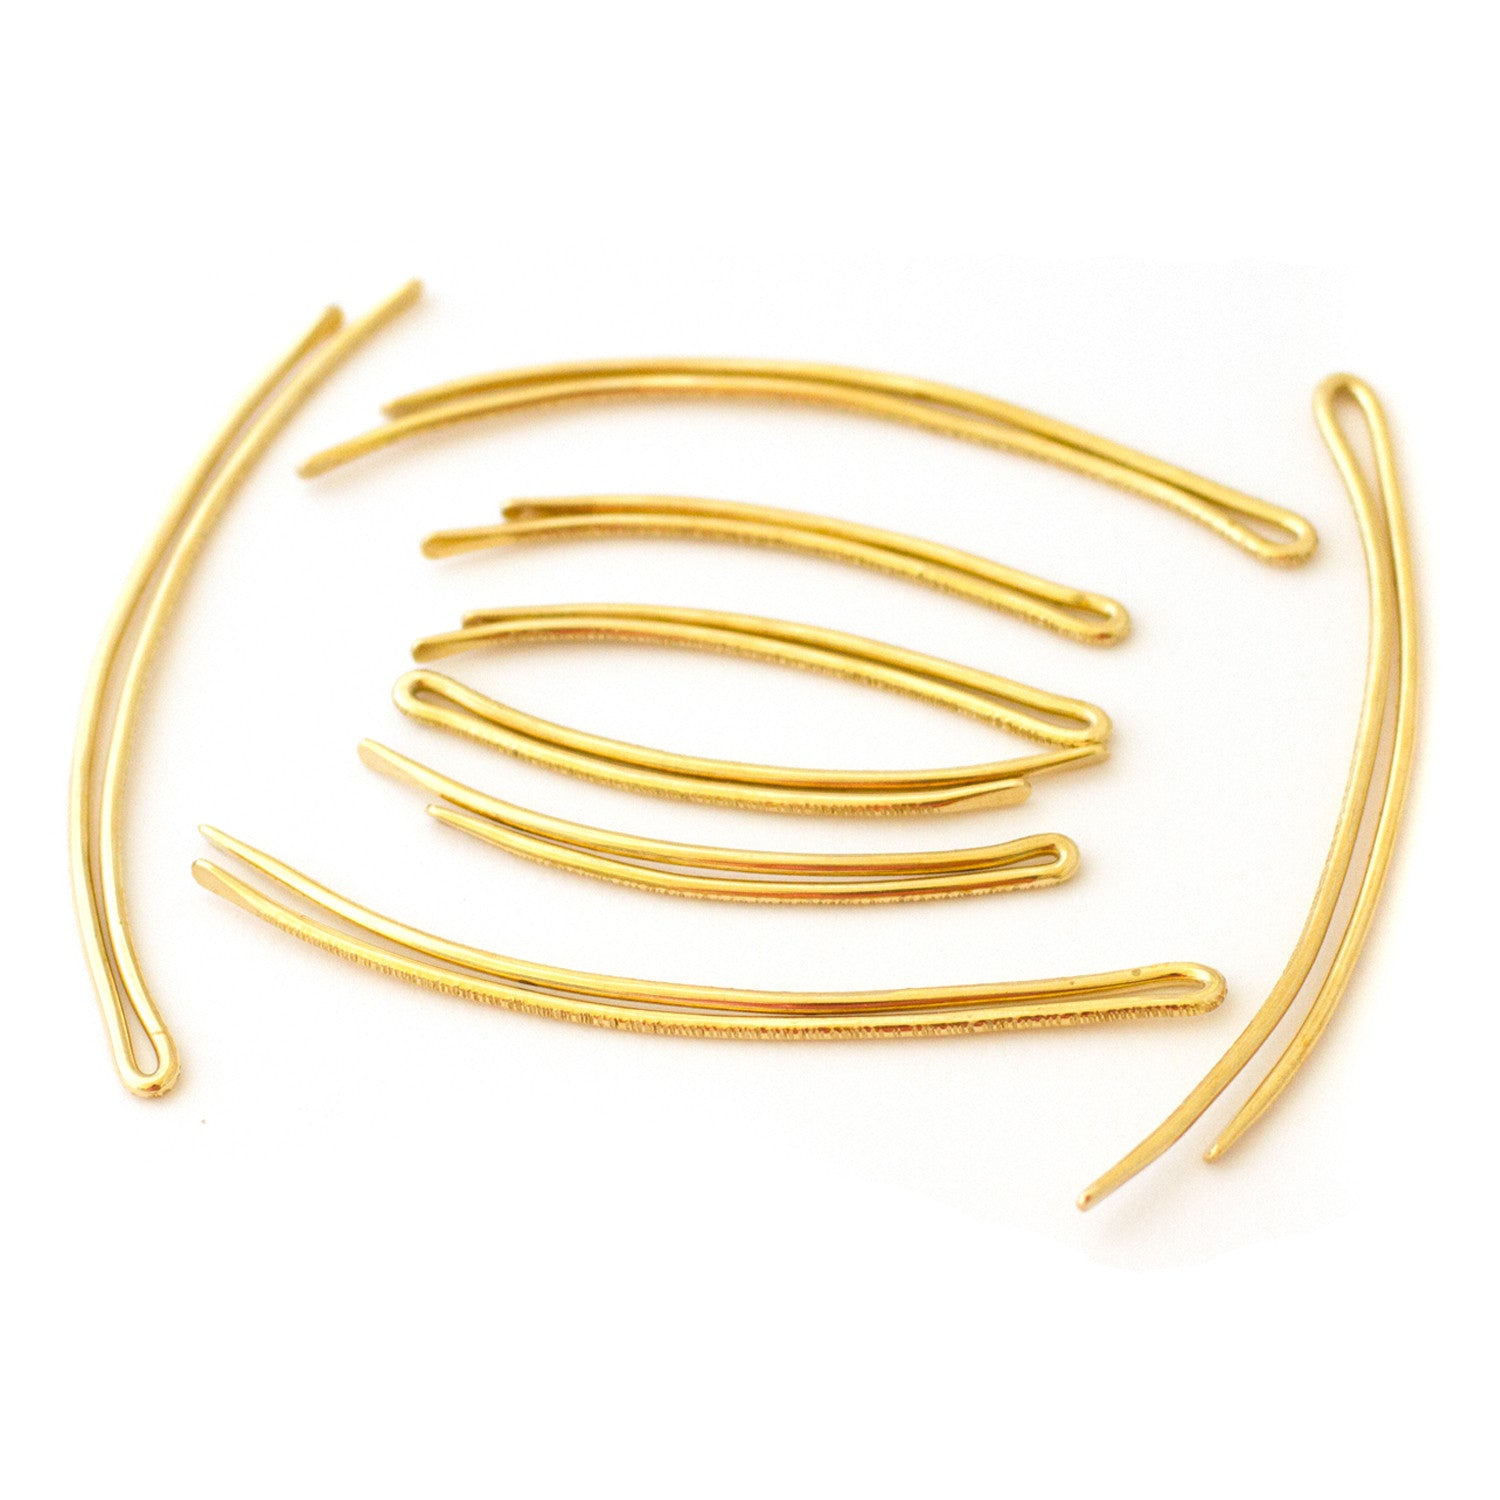 curved brass handmade bobby pins by mane message hair accessories